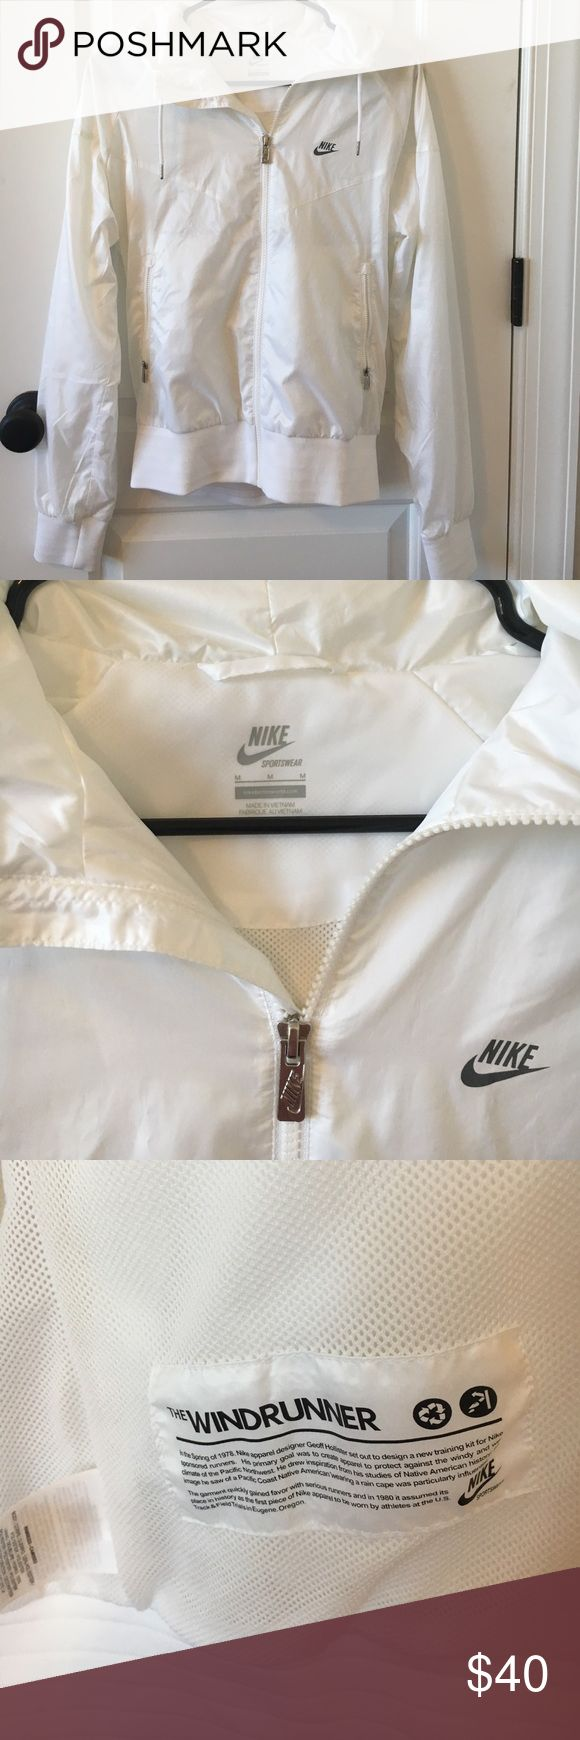 Nike Windrunner Jacket *Rare* All White Nike Windrunner jacket. Worn once. EUC! Size M. Smoke free home. Nike Jackets & Coats